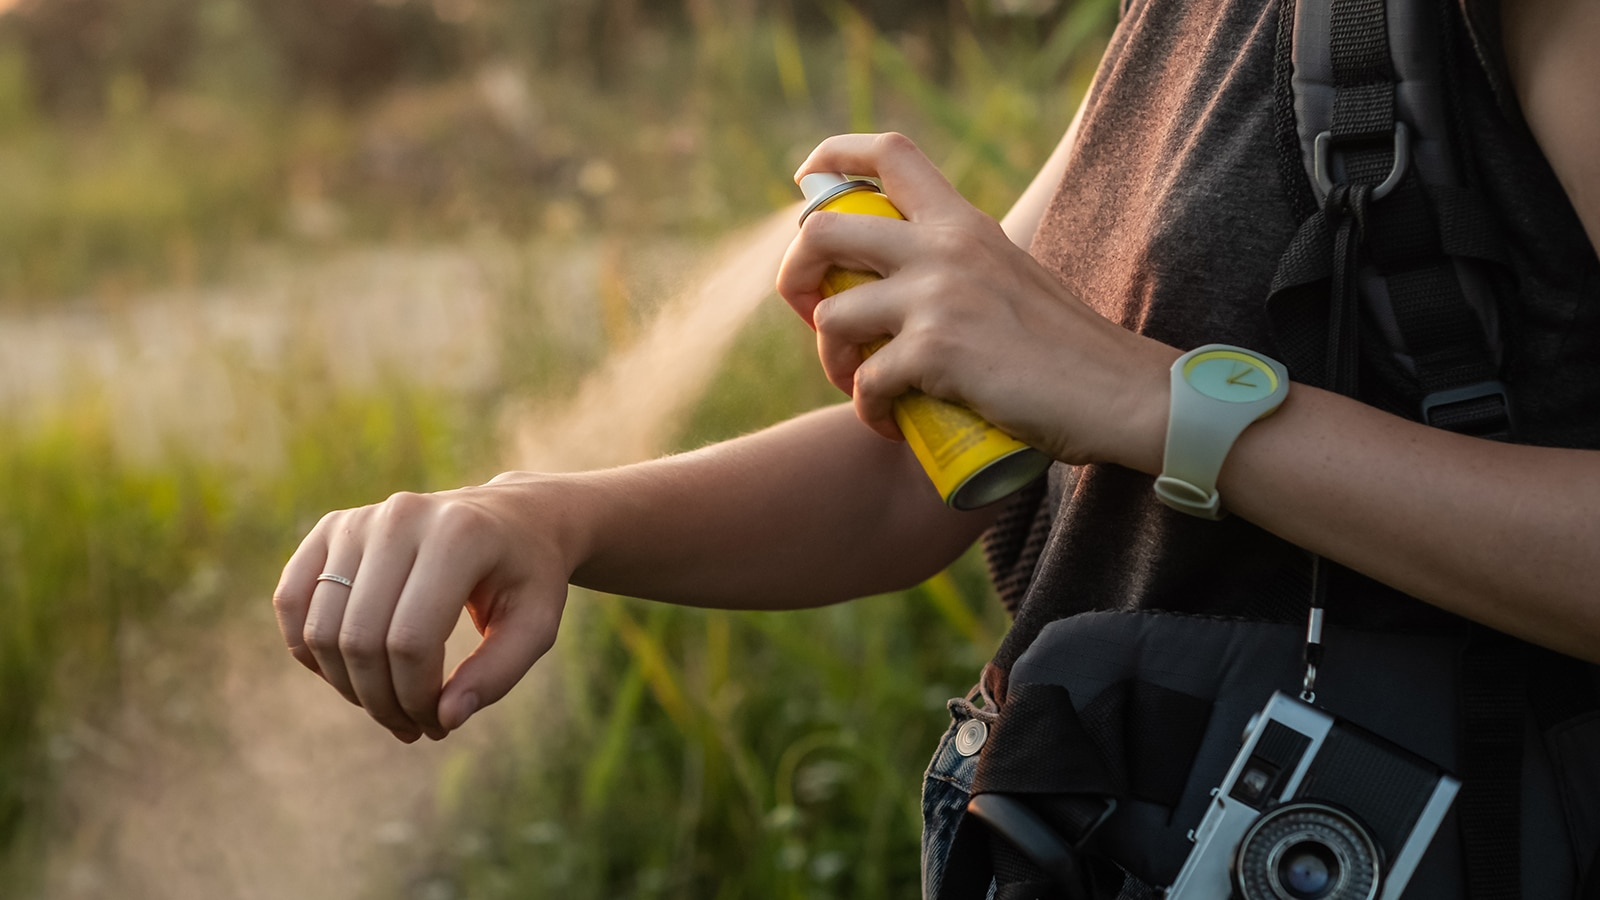 Woman using anti mosquito spray outdoors at hiking trip.